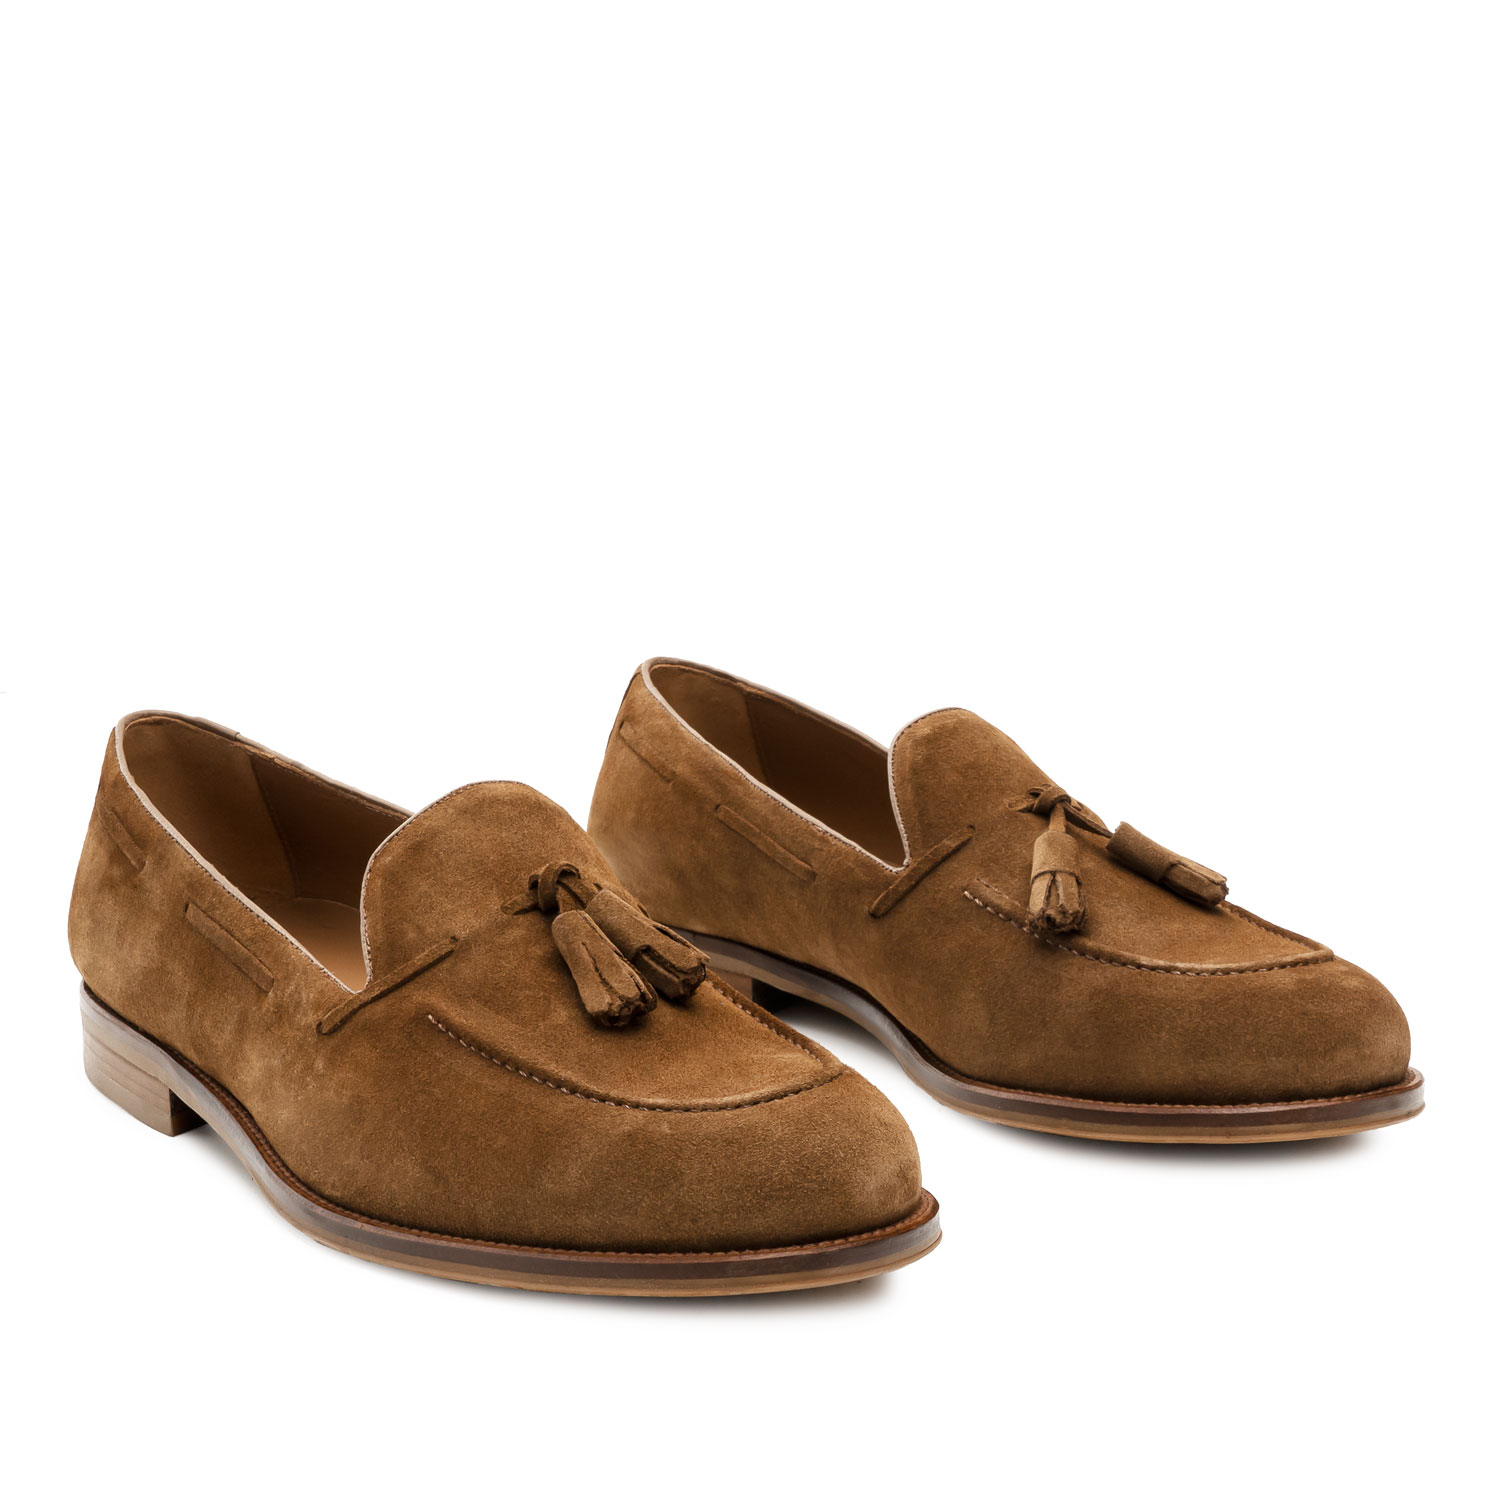 Men's Tassle Moccasins in Camel Split Leather